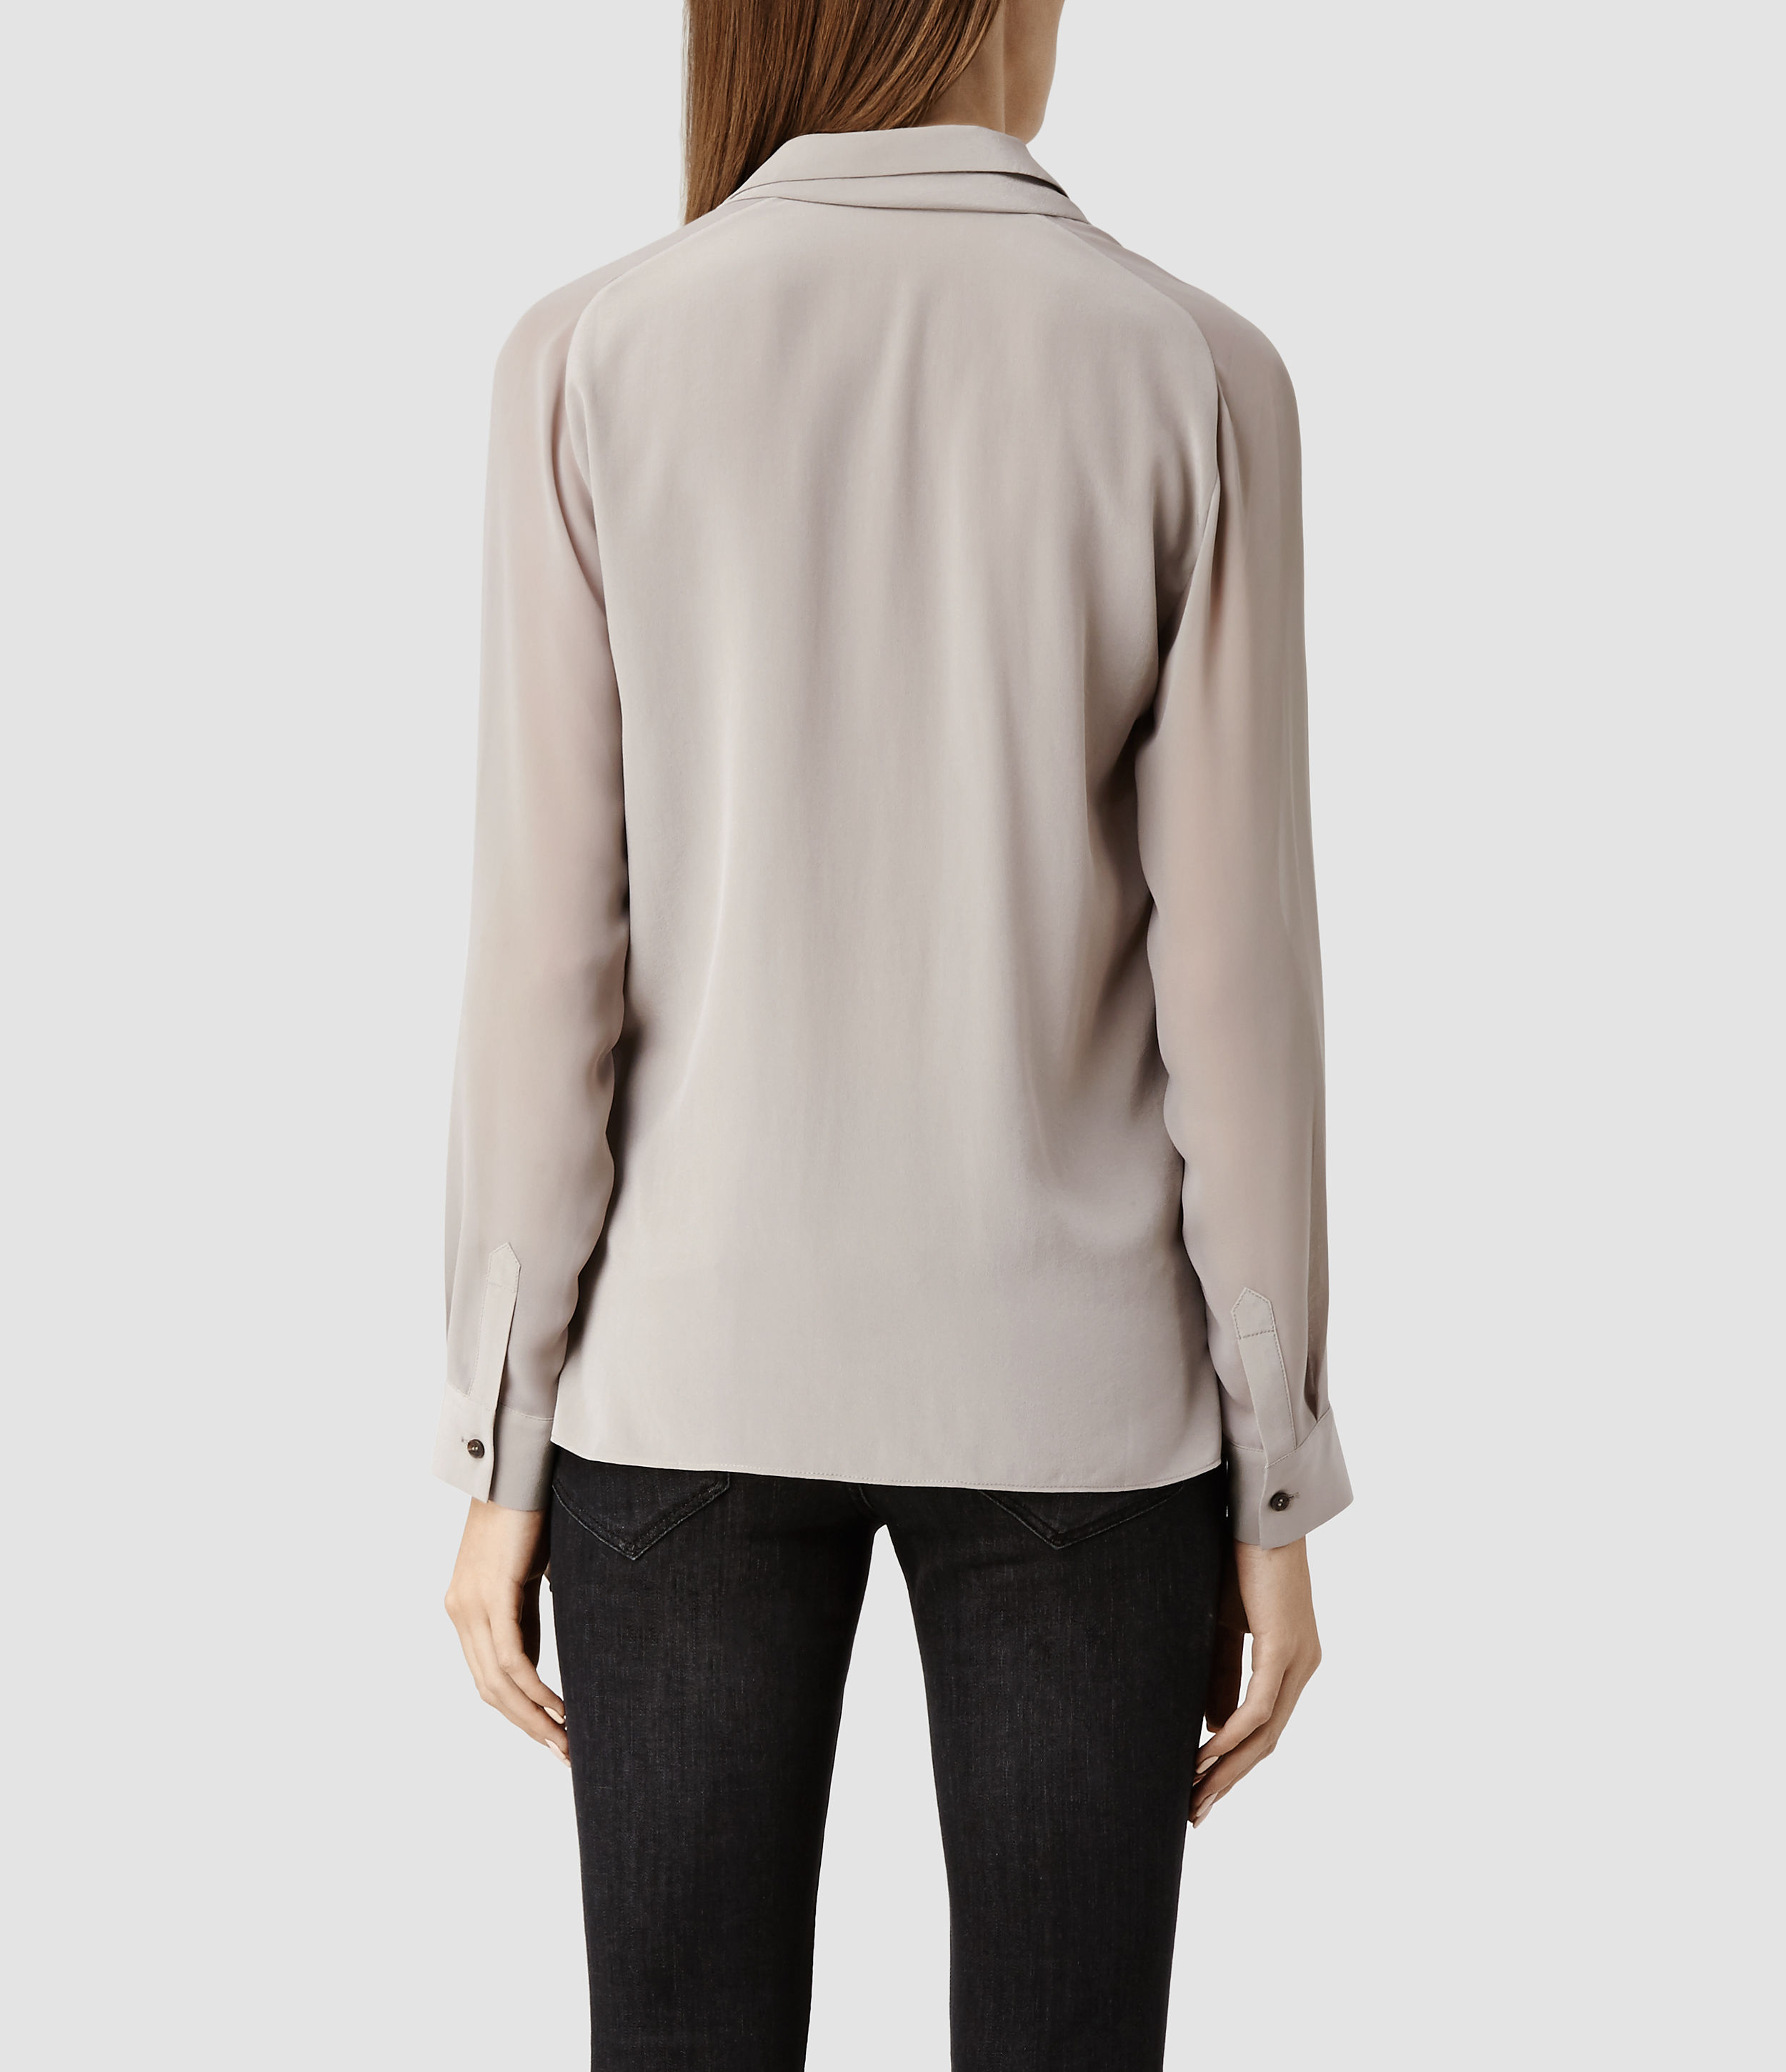 AllSaints Lucas Shirt in Taupe/Taupe (Brown)